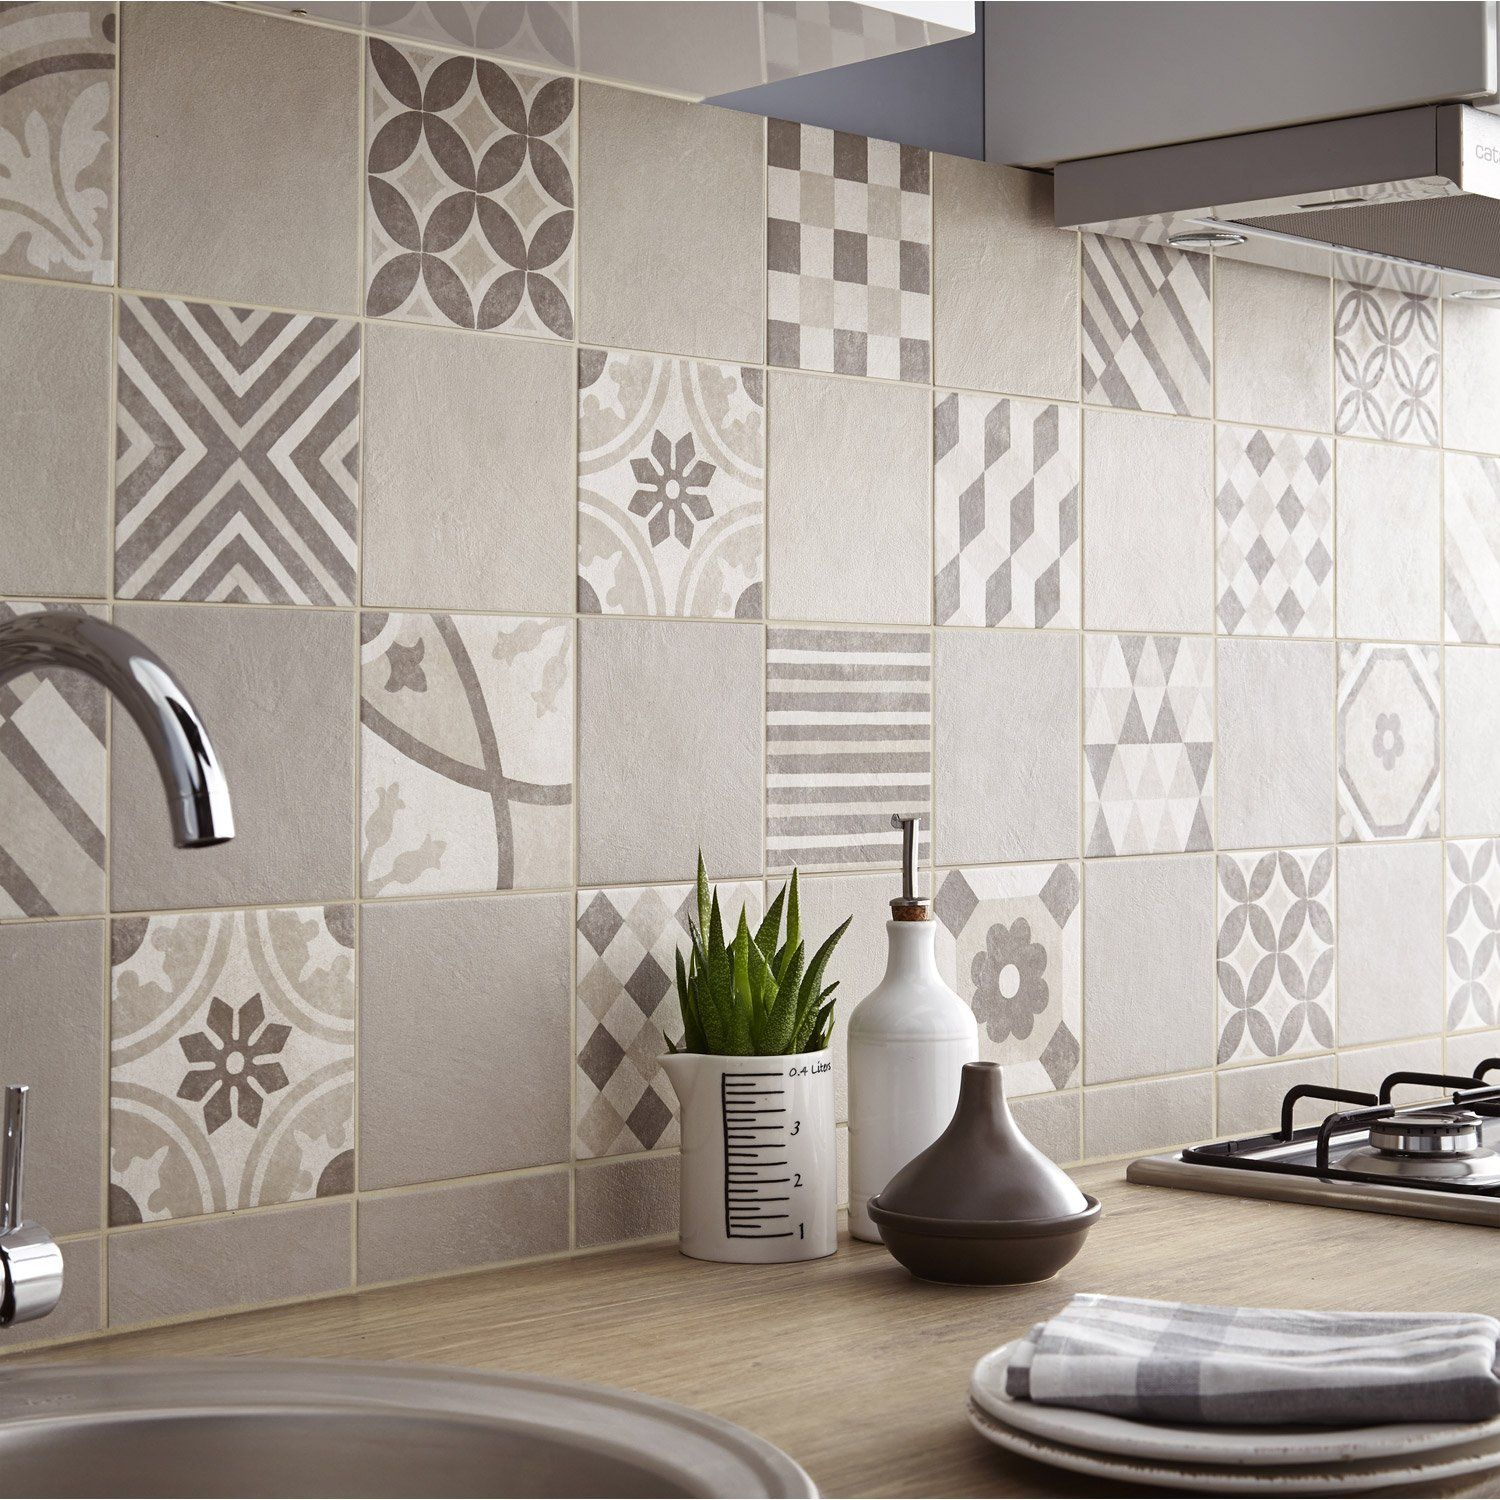 Carrelage Murale Leroy Merlin Épinglé Par Redd Rabbit Sur 4house En 2019 Kitchen Wall Tiles